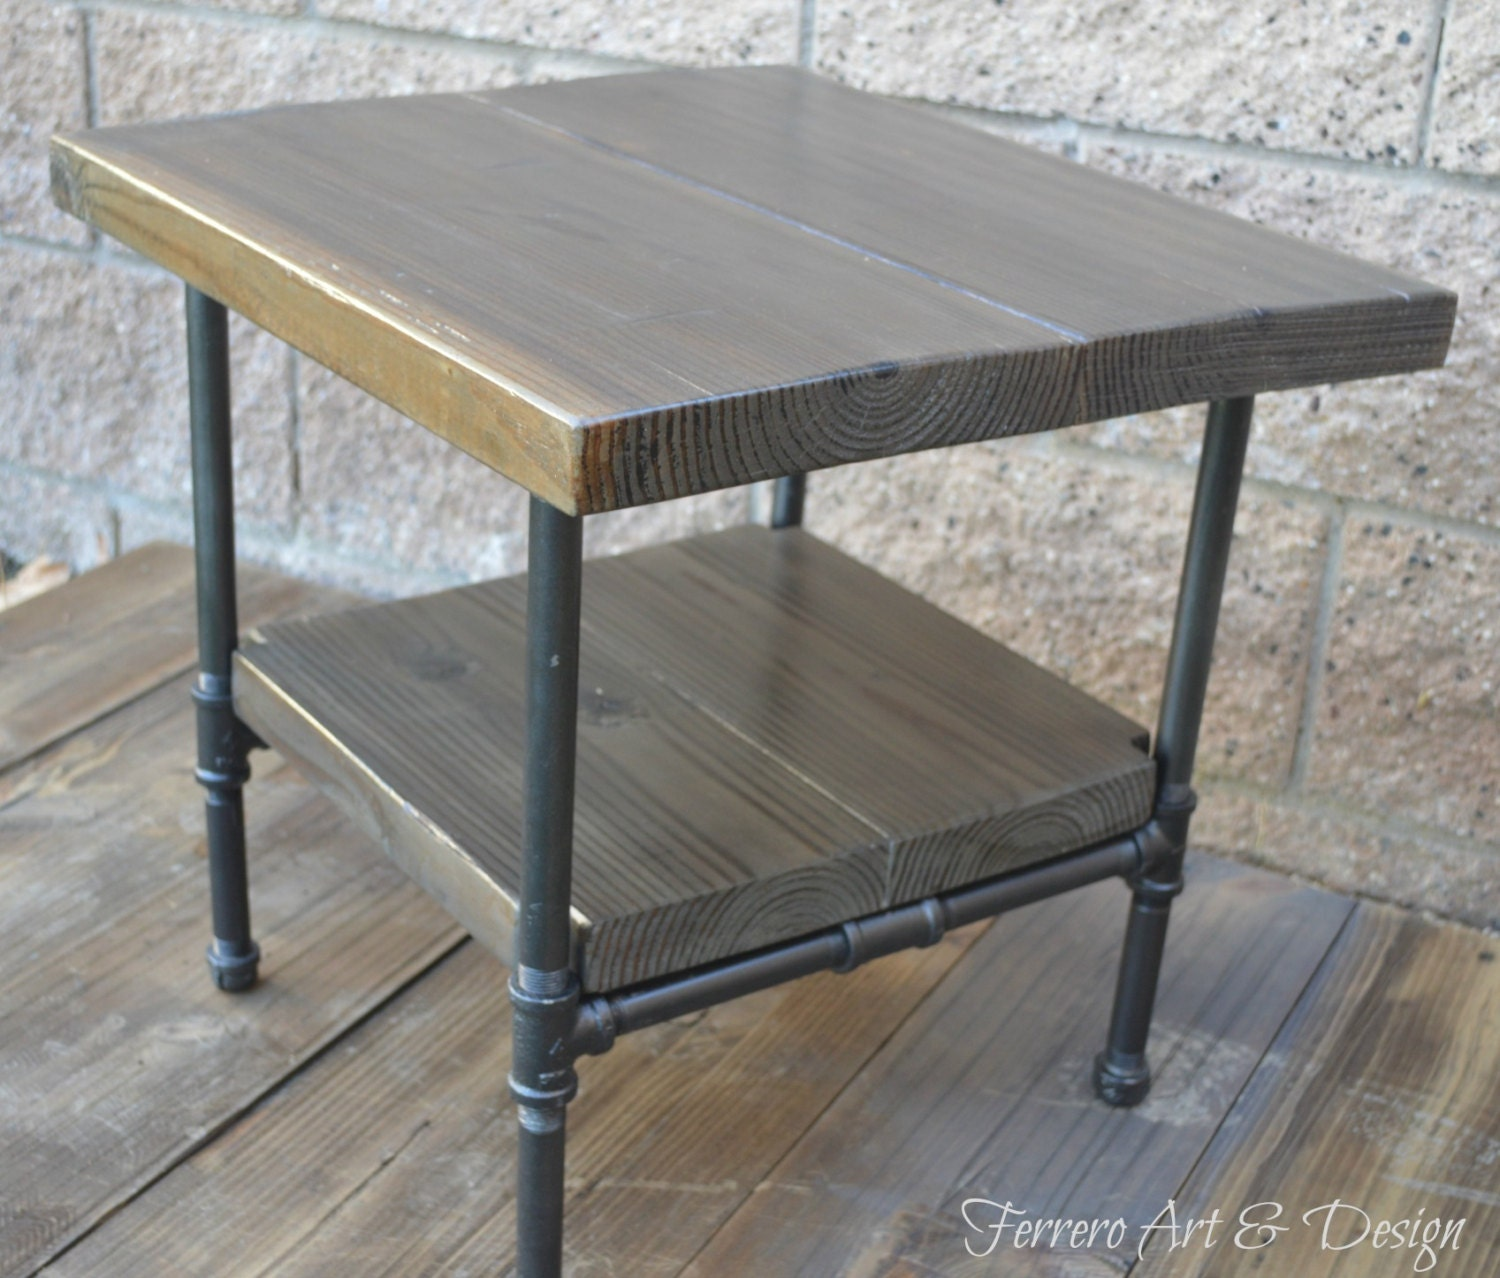 This Sleek And Rustic Industrial Table Would Look Great In: Steampunk Table Industrial Nightstand By FerreroArtDesign